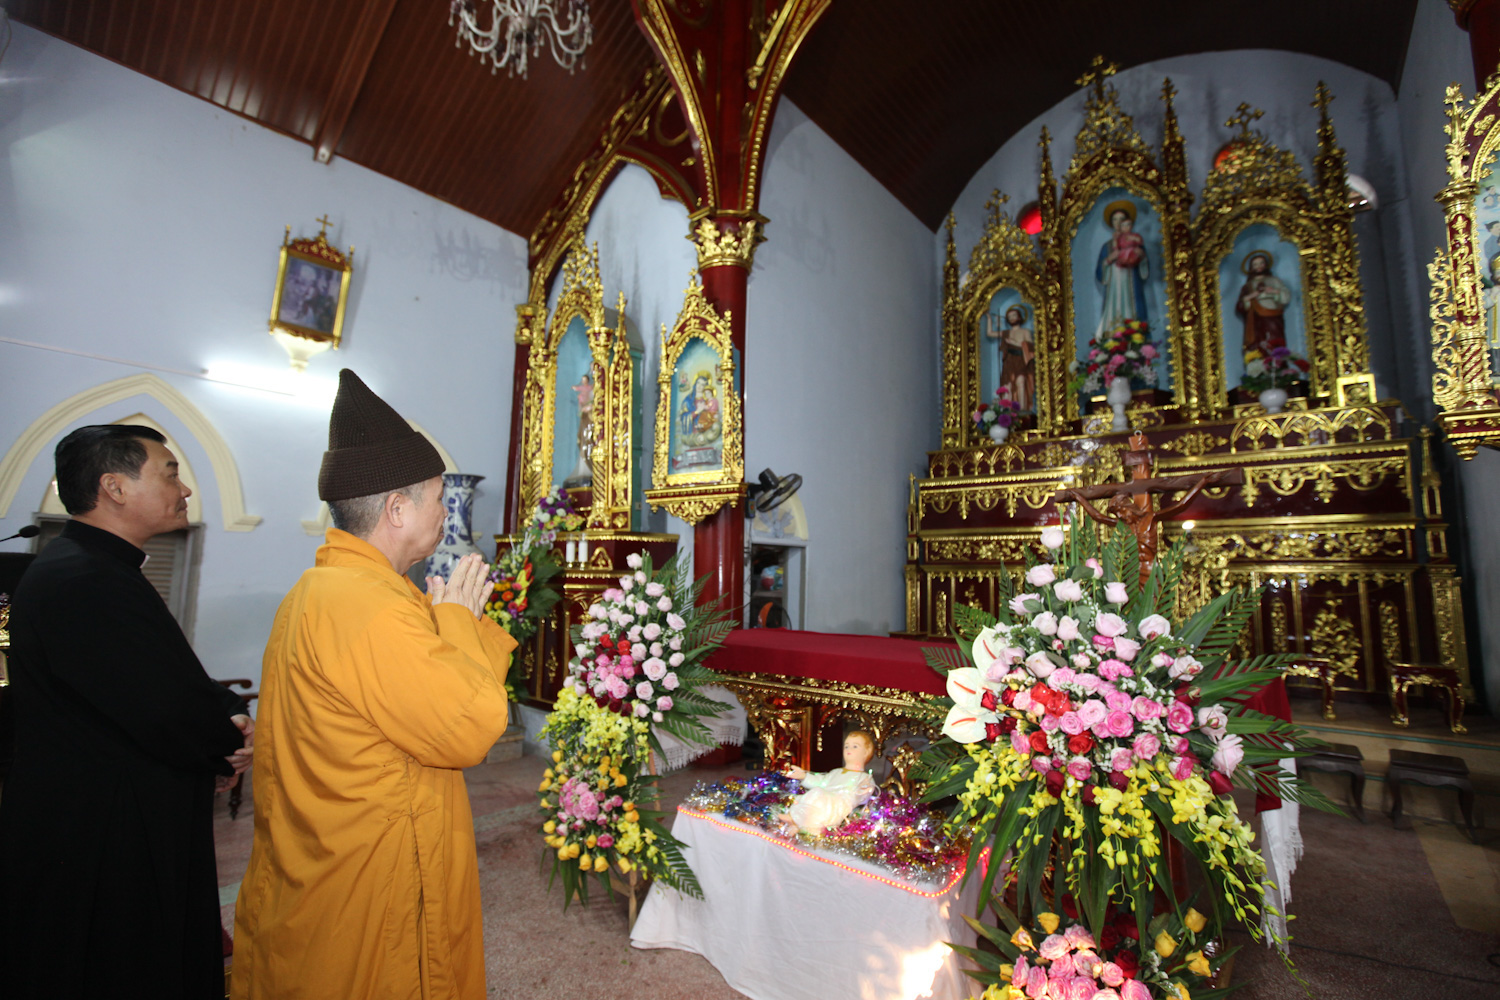 Venerable Thich Thanh Quyet pays his respect at a Catholic altar on December 24, 2019. Photo: Anh Dung / Tuoi Tre